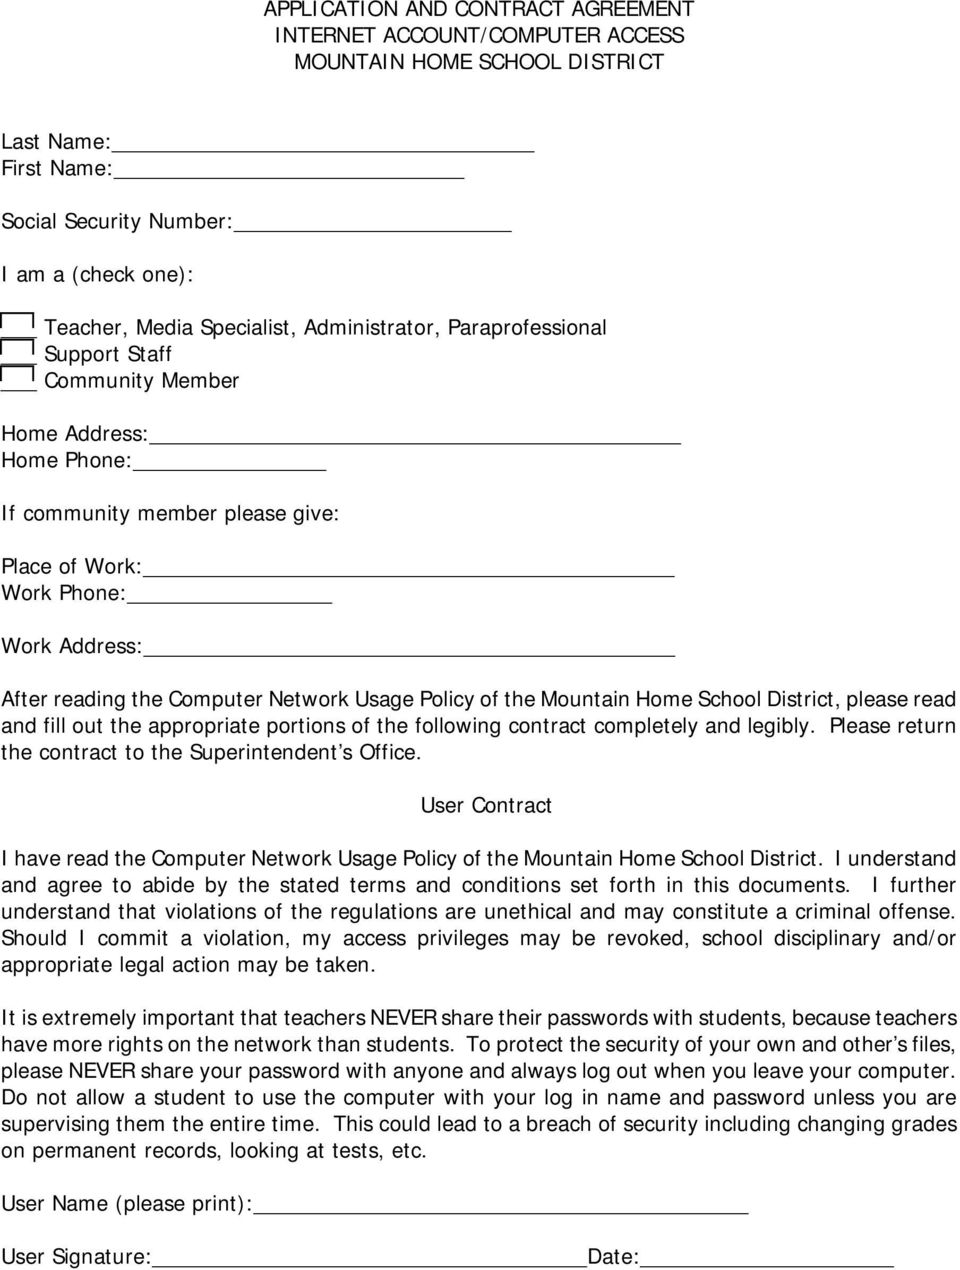 Usage Policy of the Mountain Home School District, please read and fill out the appropriate portions of the following contract completely and legibly.